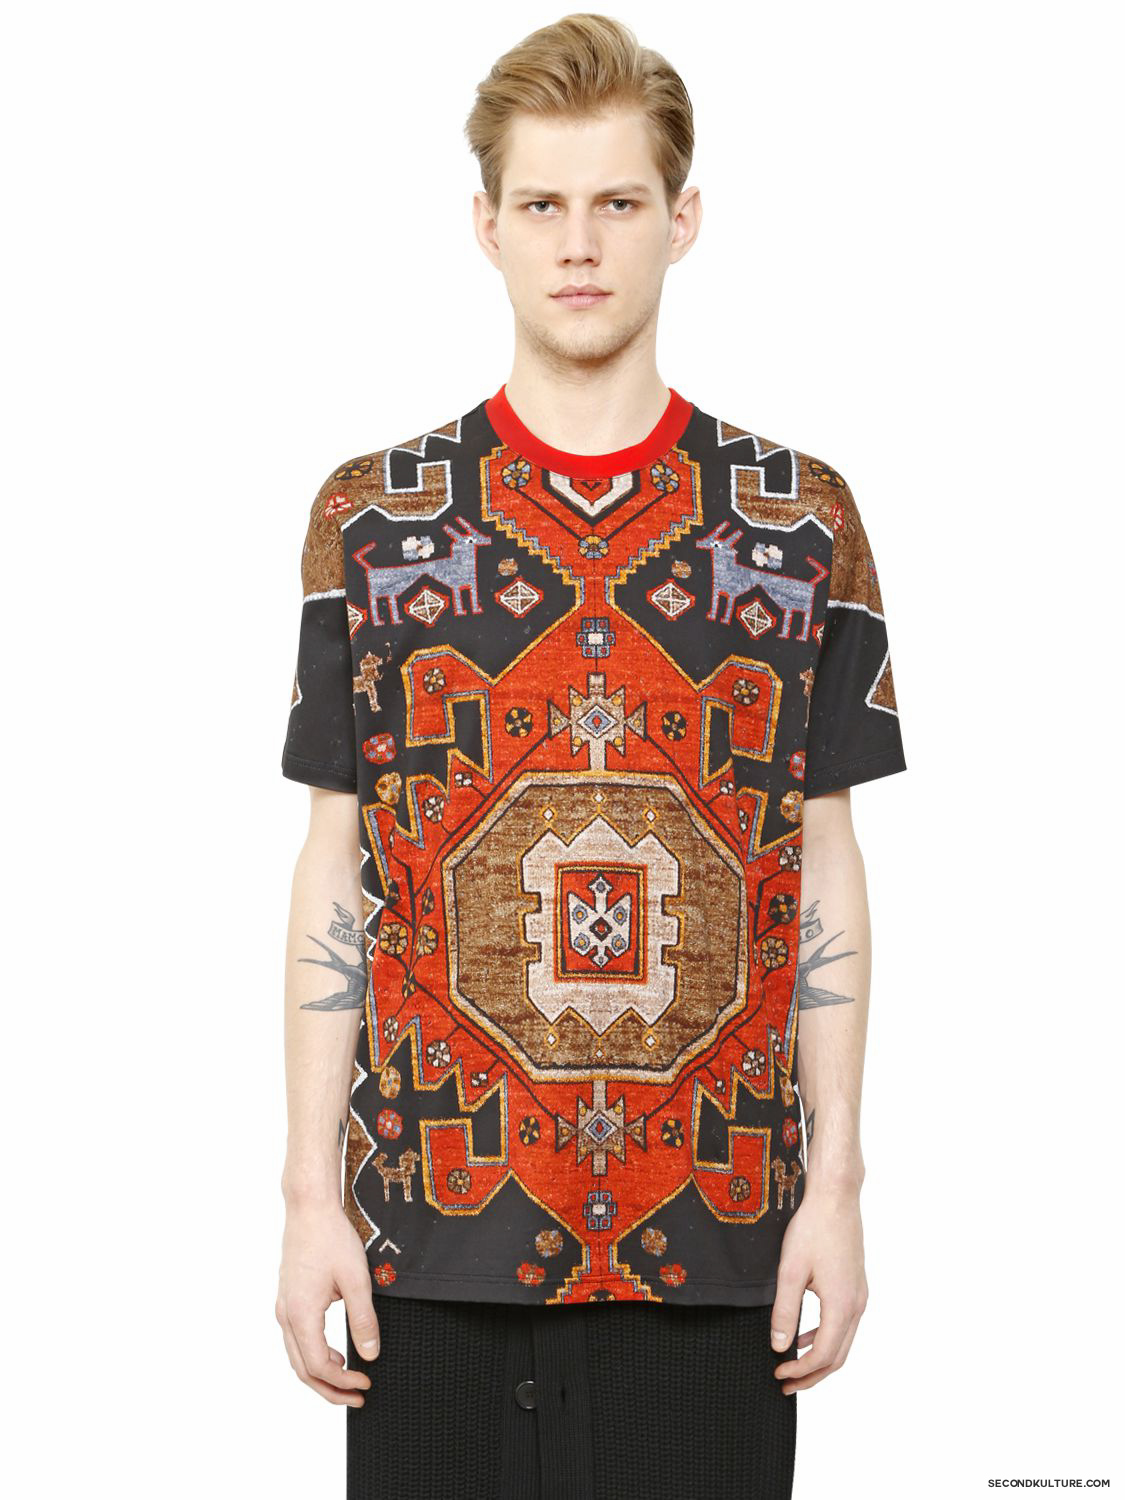 Givenchy-Native-American-Carpet-Print-Columbian-Fit-T-Shirt-Fall-Winter-2015-1